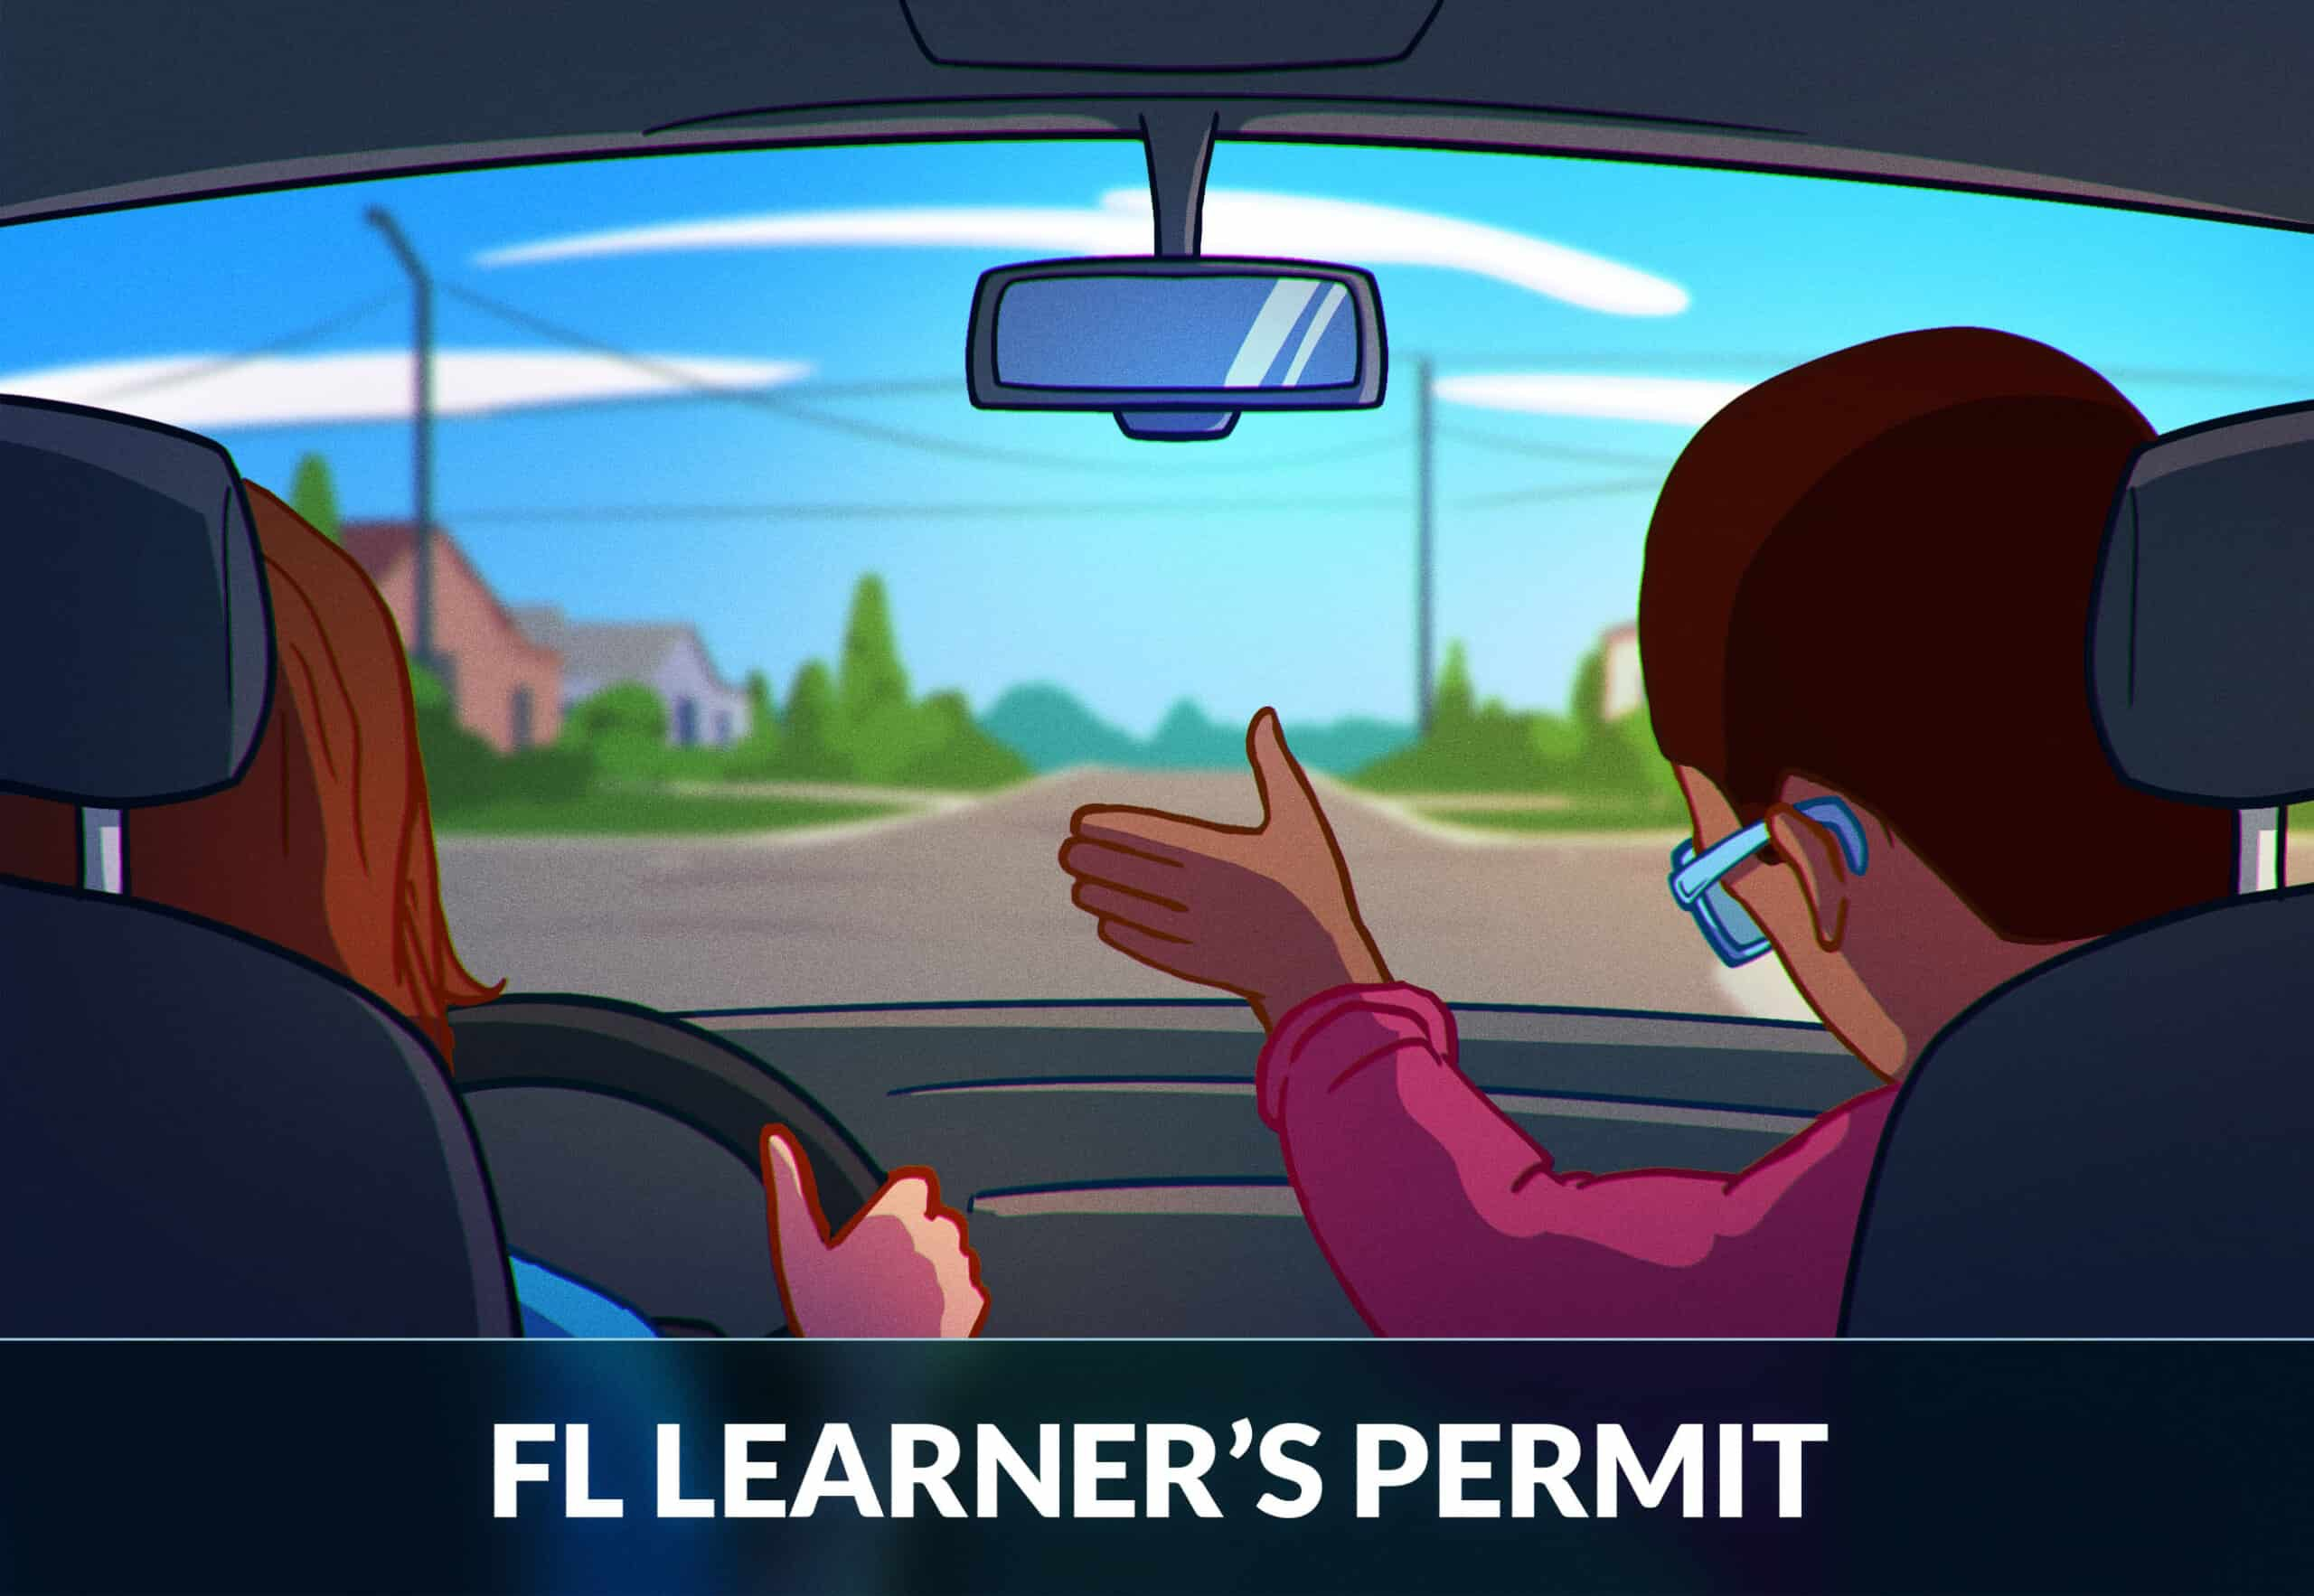 Florida learners permit